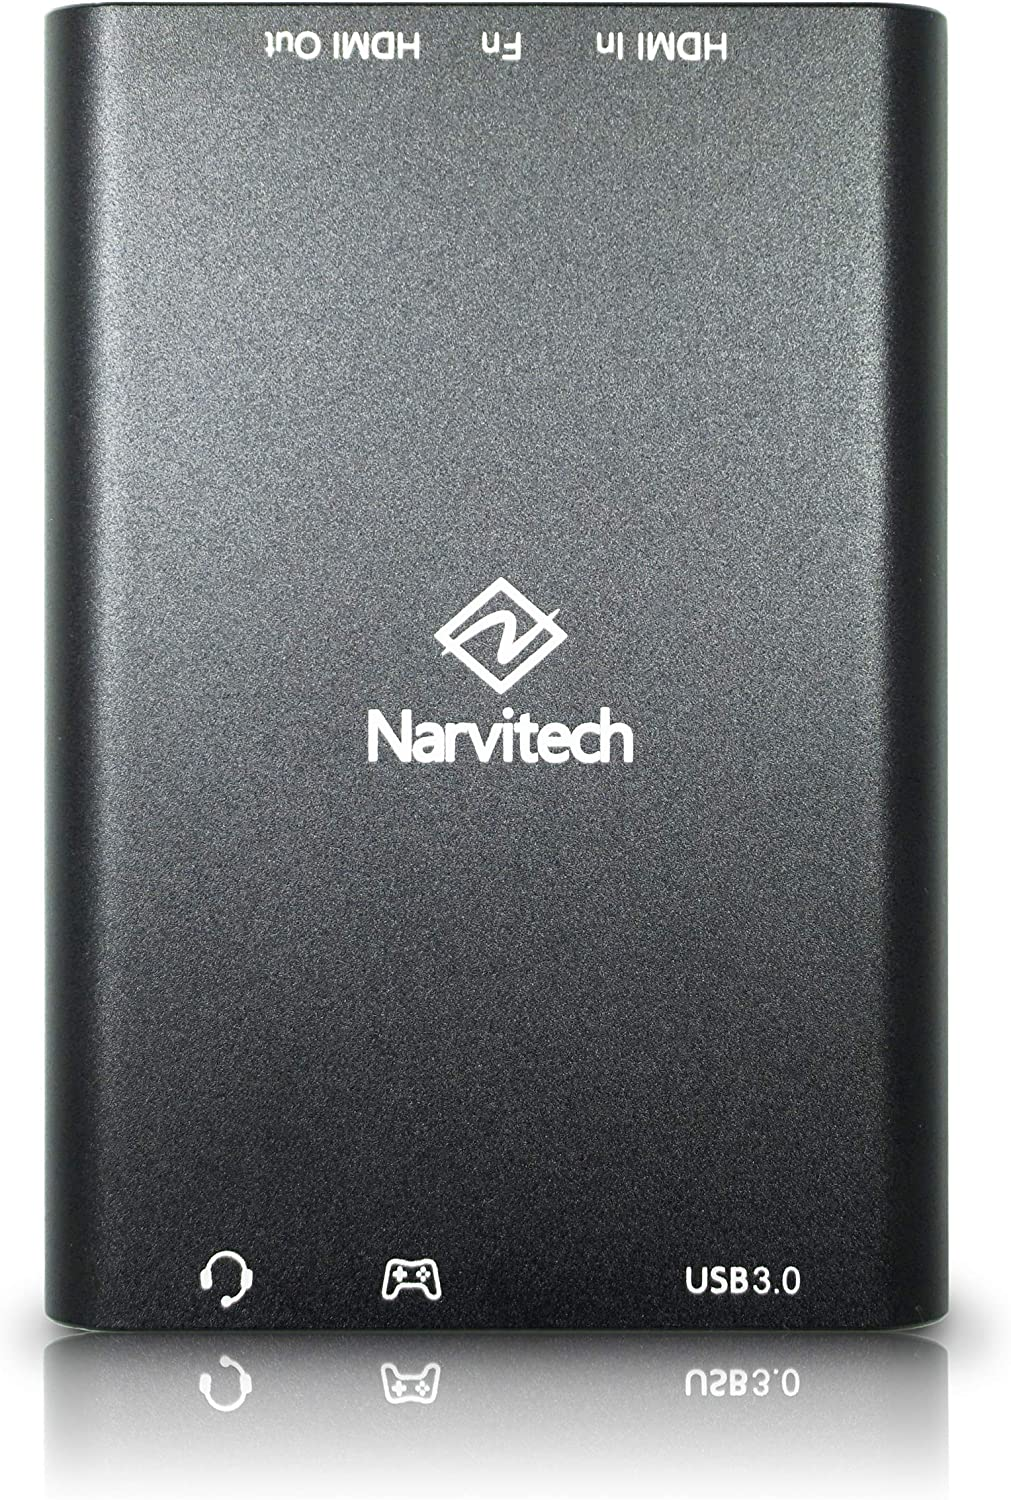 Narvitech NJ300, USB3.0 HD60 4Kp60 HDMI Bypass Game Capture Box. Streaming and Capture 1080p Video with OBS, Cyberlink Screen Recorder 4 from PS4, Xbox Game Console.